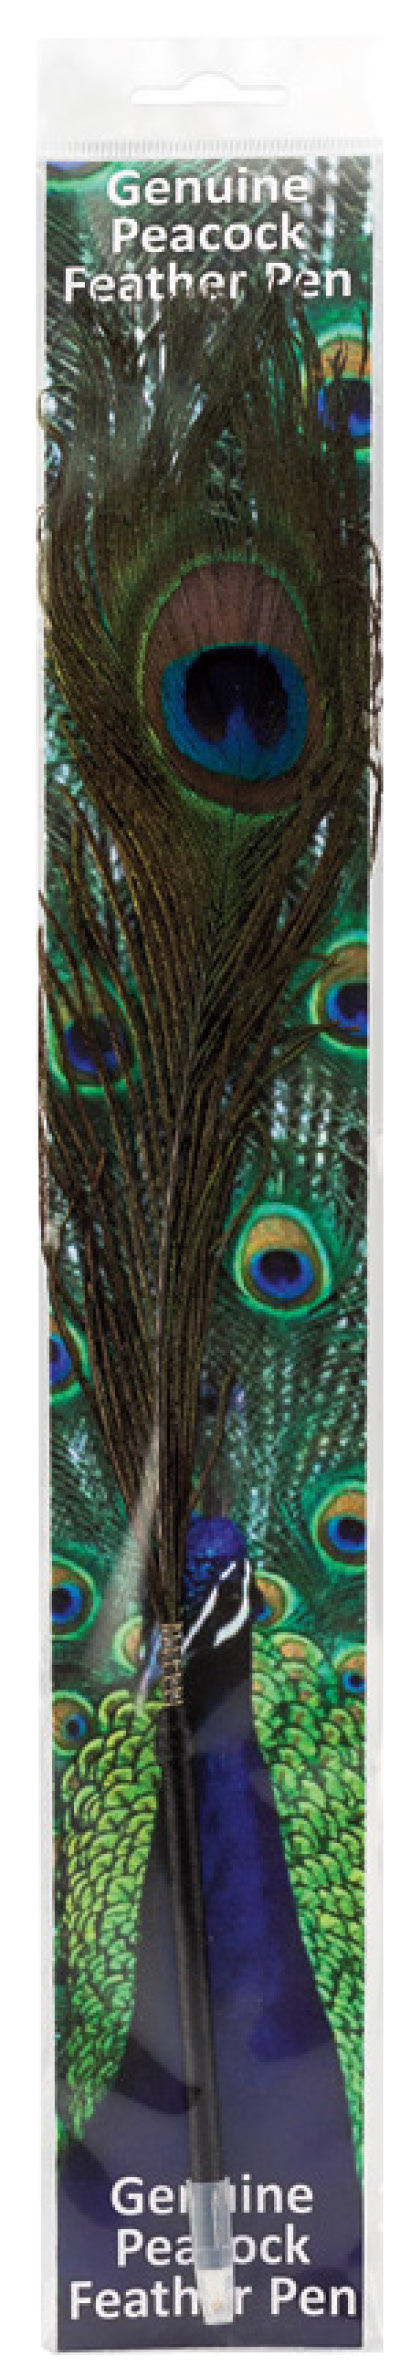 Packaged genuine Peacock feather pen